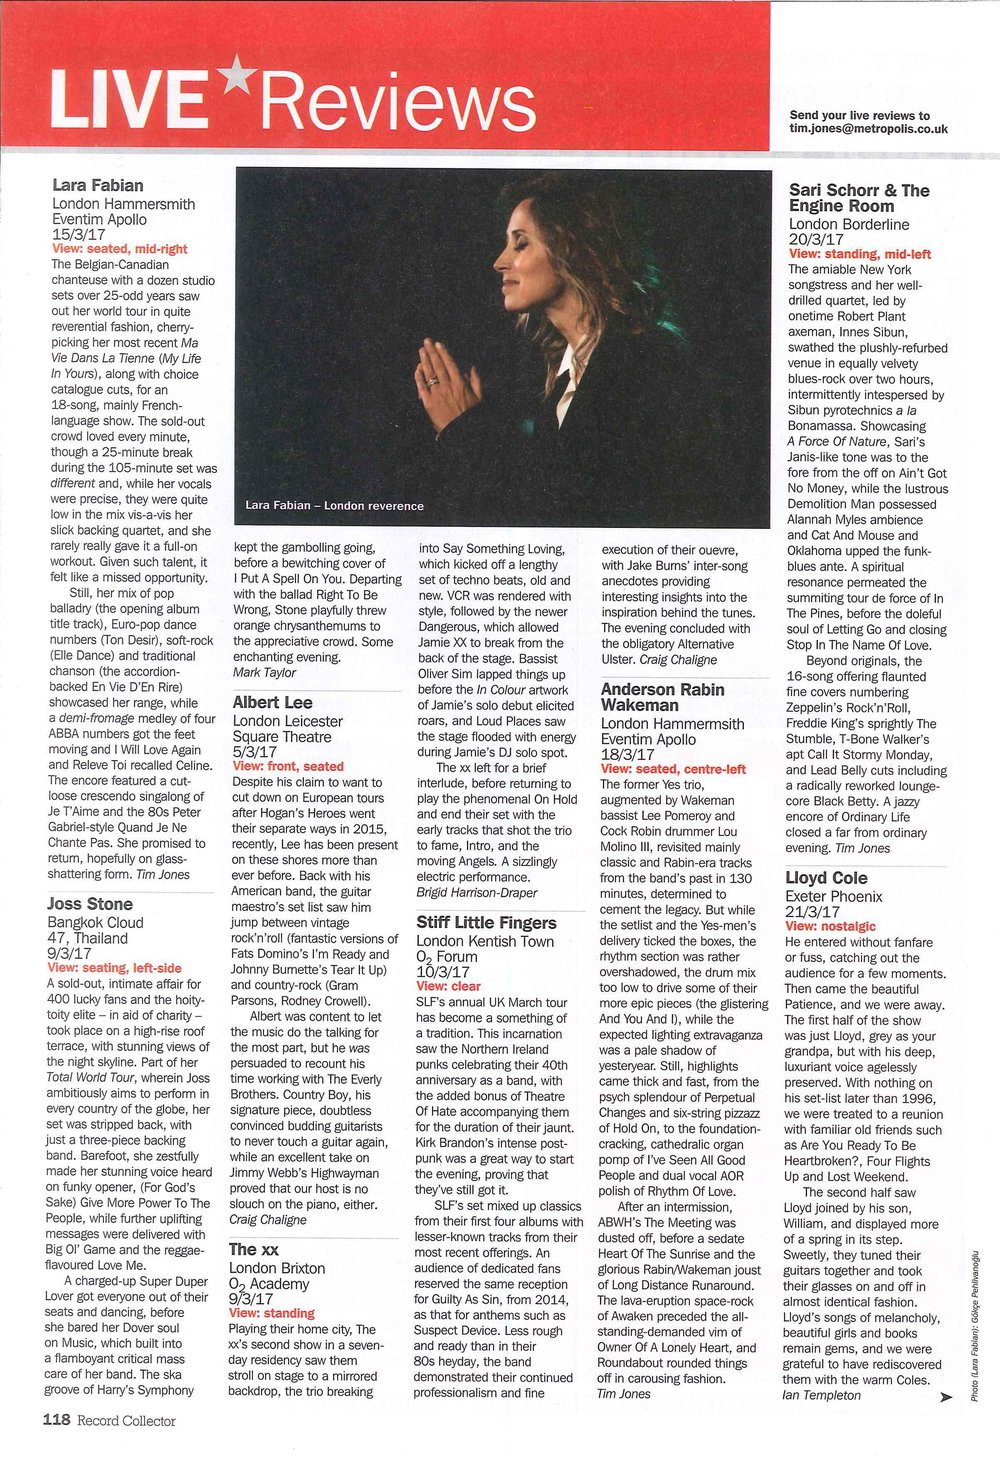 Record Collector_May 2017_Sari Schorr_London Borderline review_2.jpg